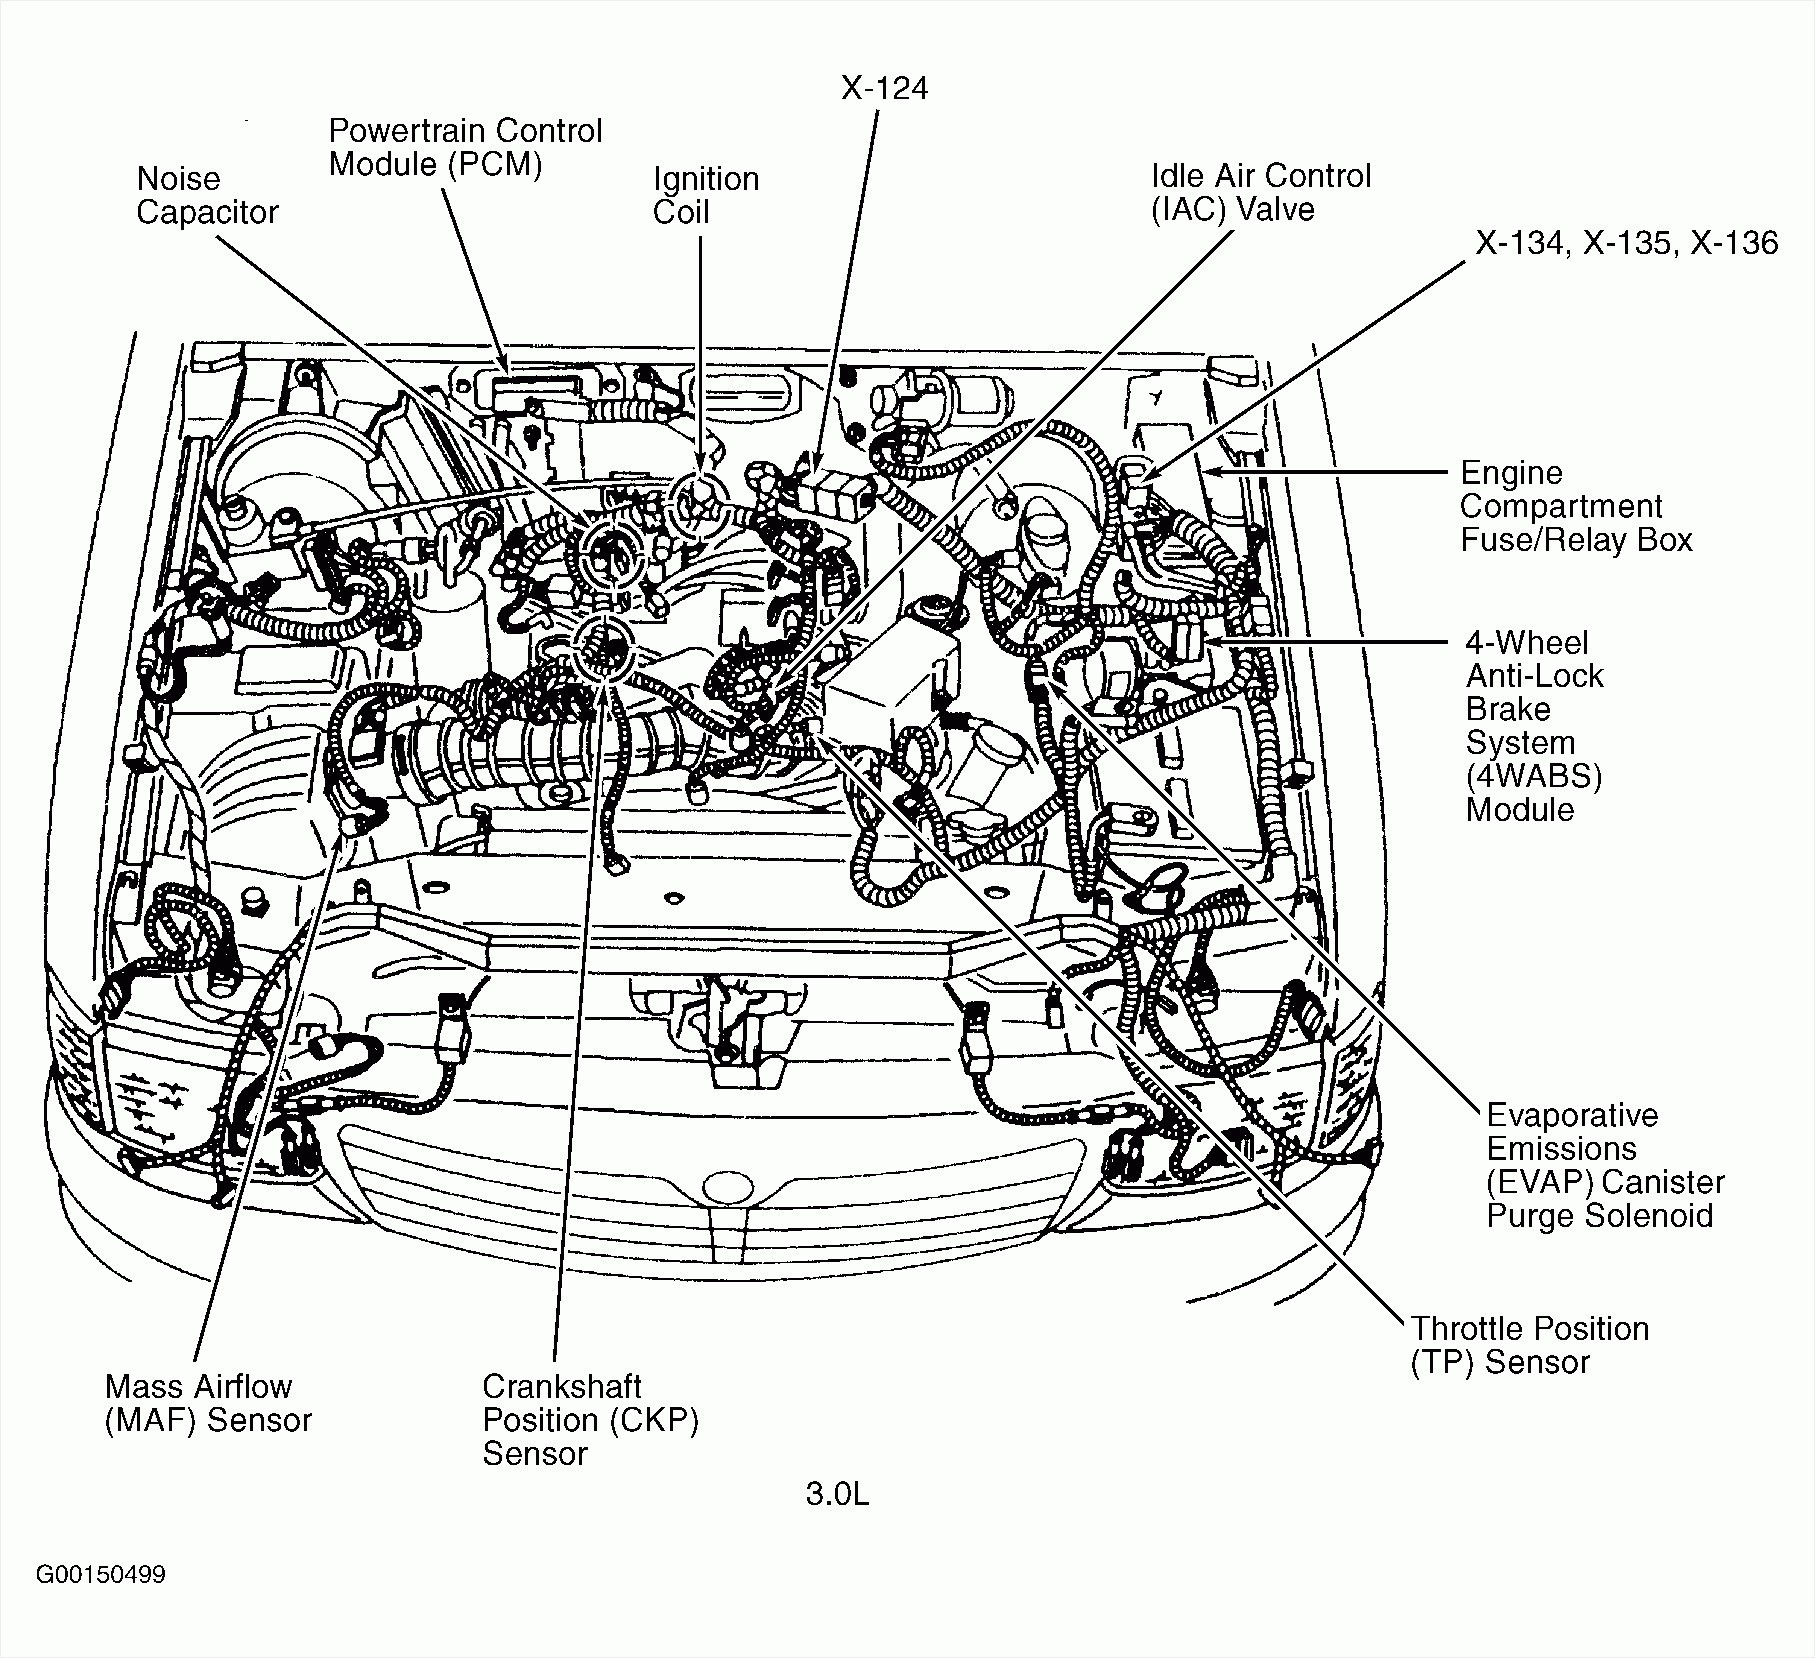 1989 bronco ii ignition wiring schematics 1988 ford bronco ii transmission wiring diagram